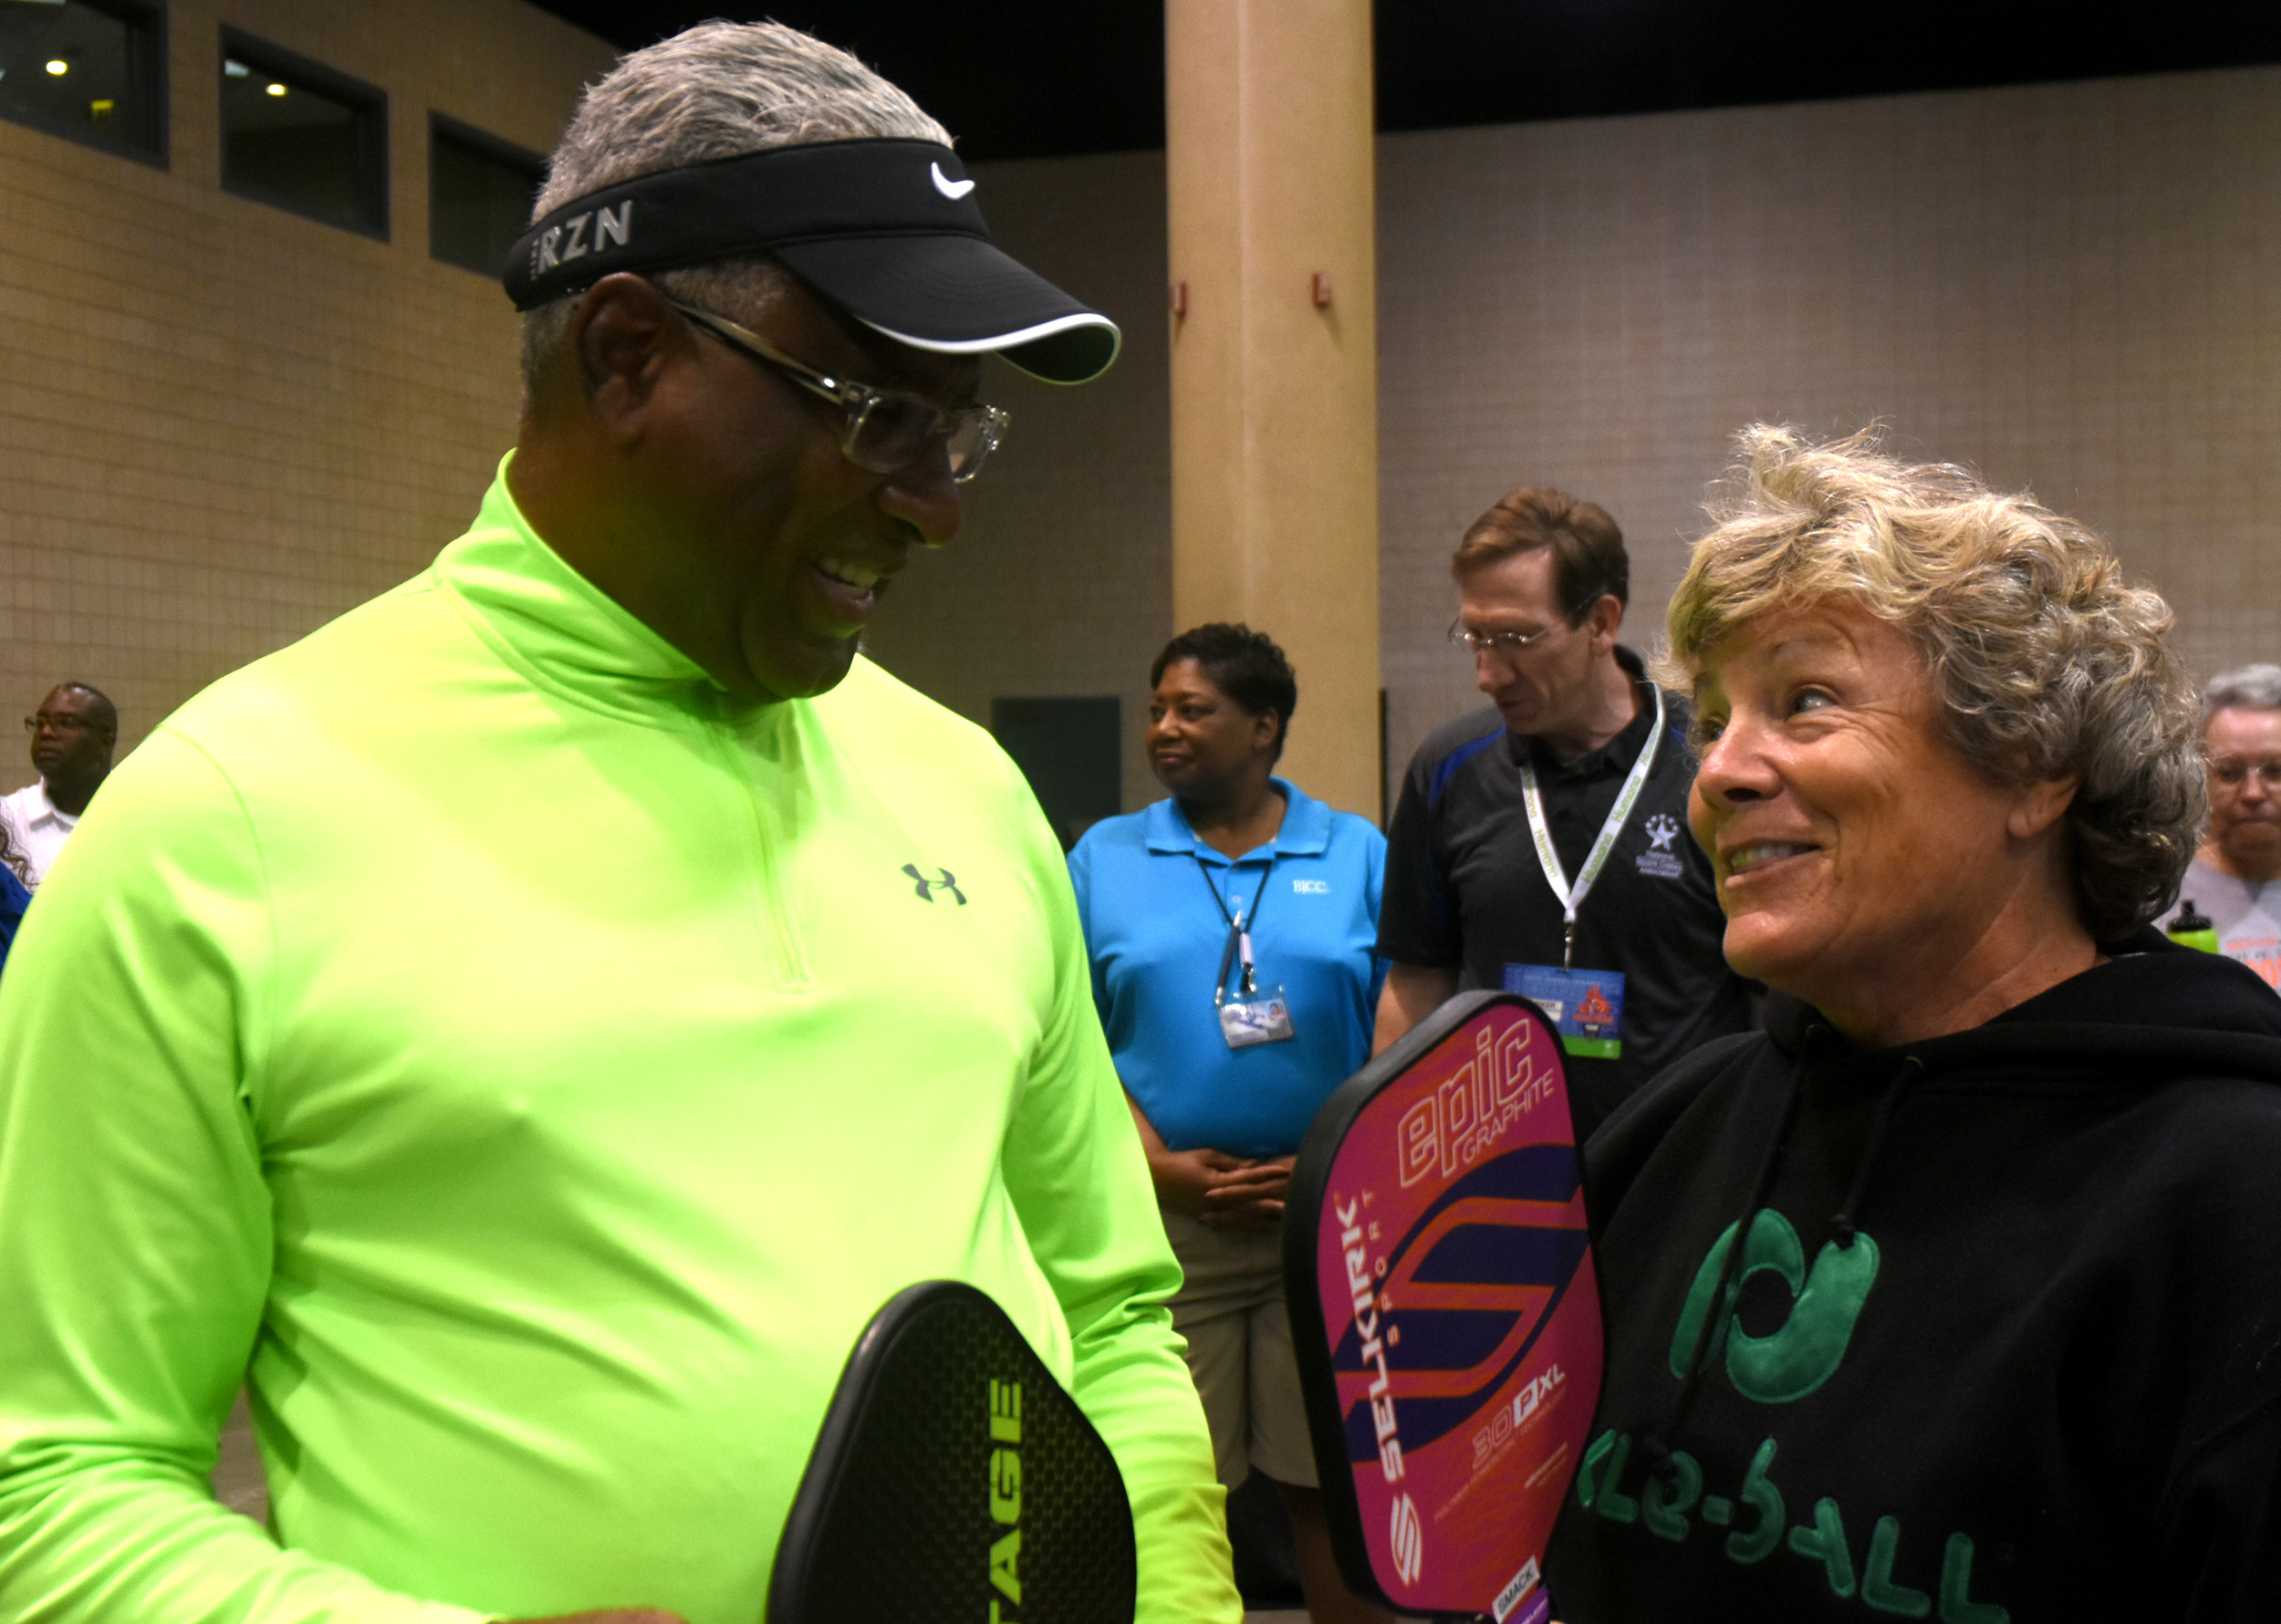 Birmingham Mayor William Bell gets instructions on the art of pickleball from Sharon MacKenzie. (Solomon Crenshaw Jr. photo)